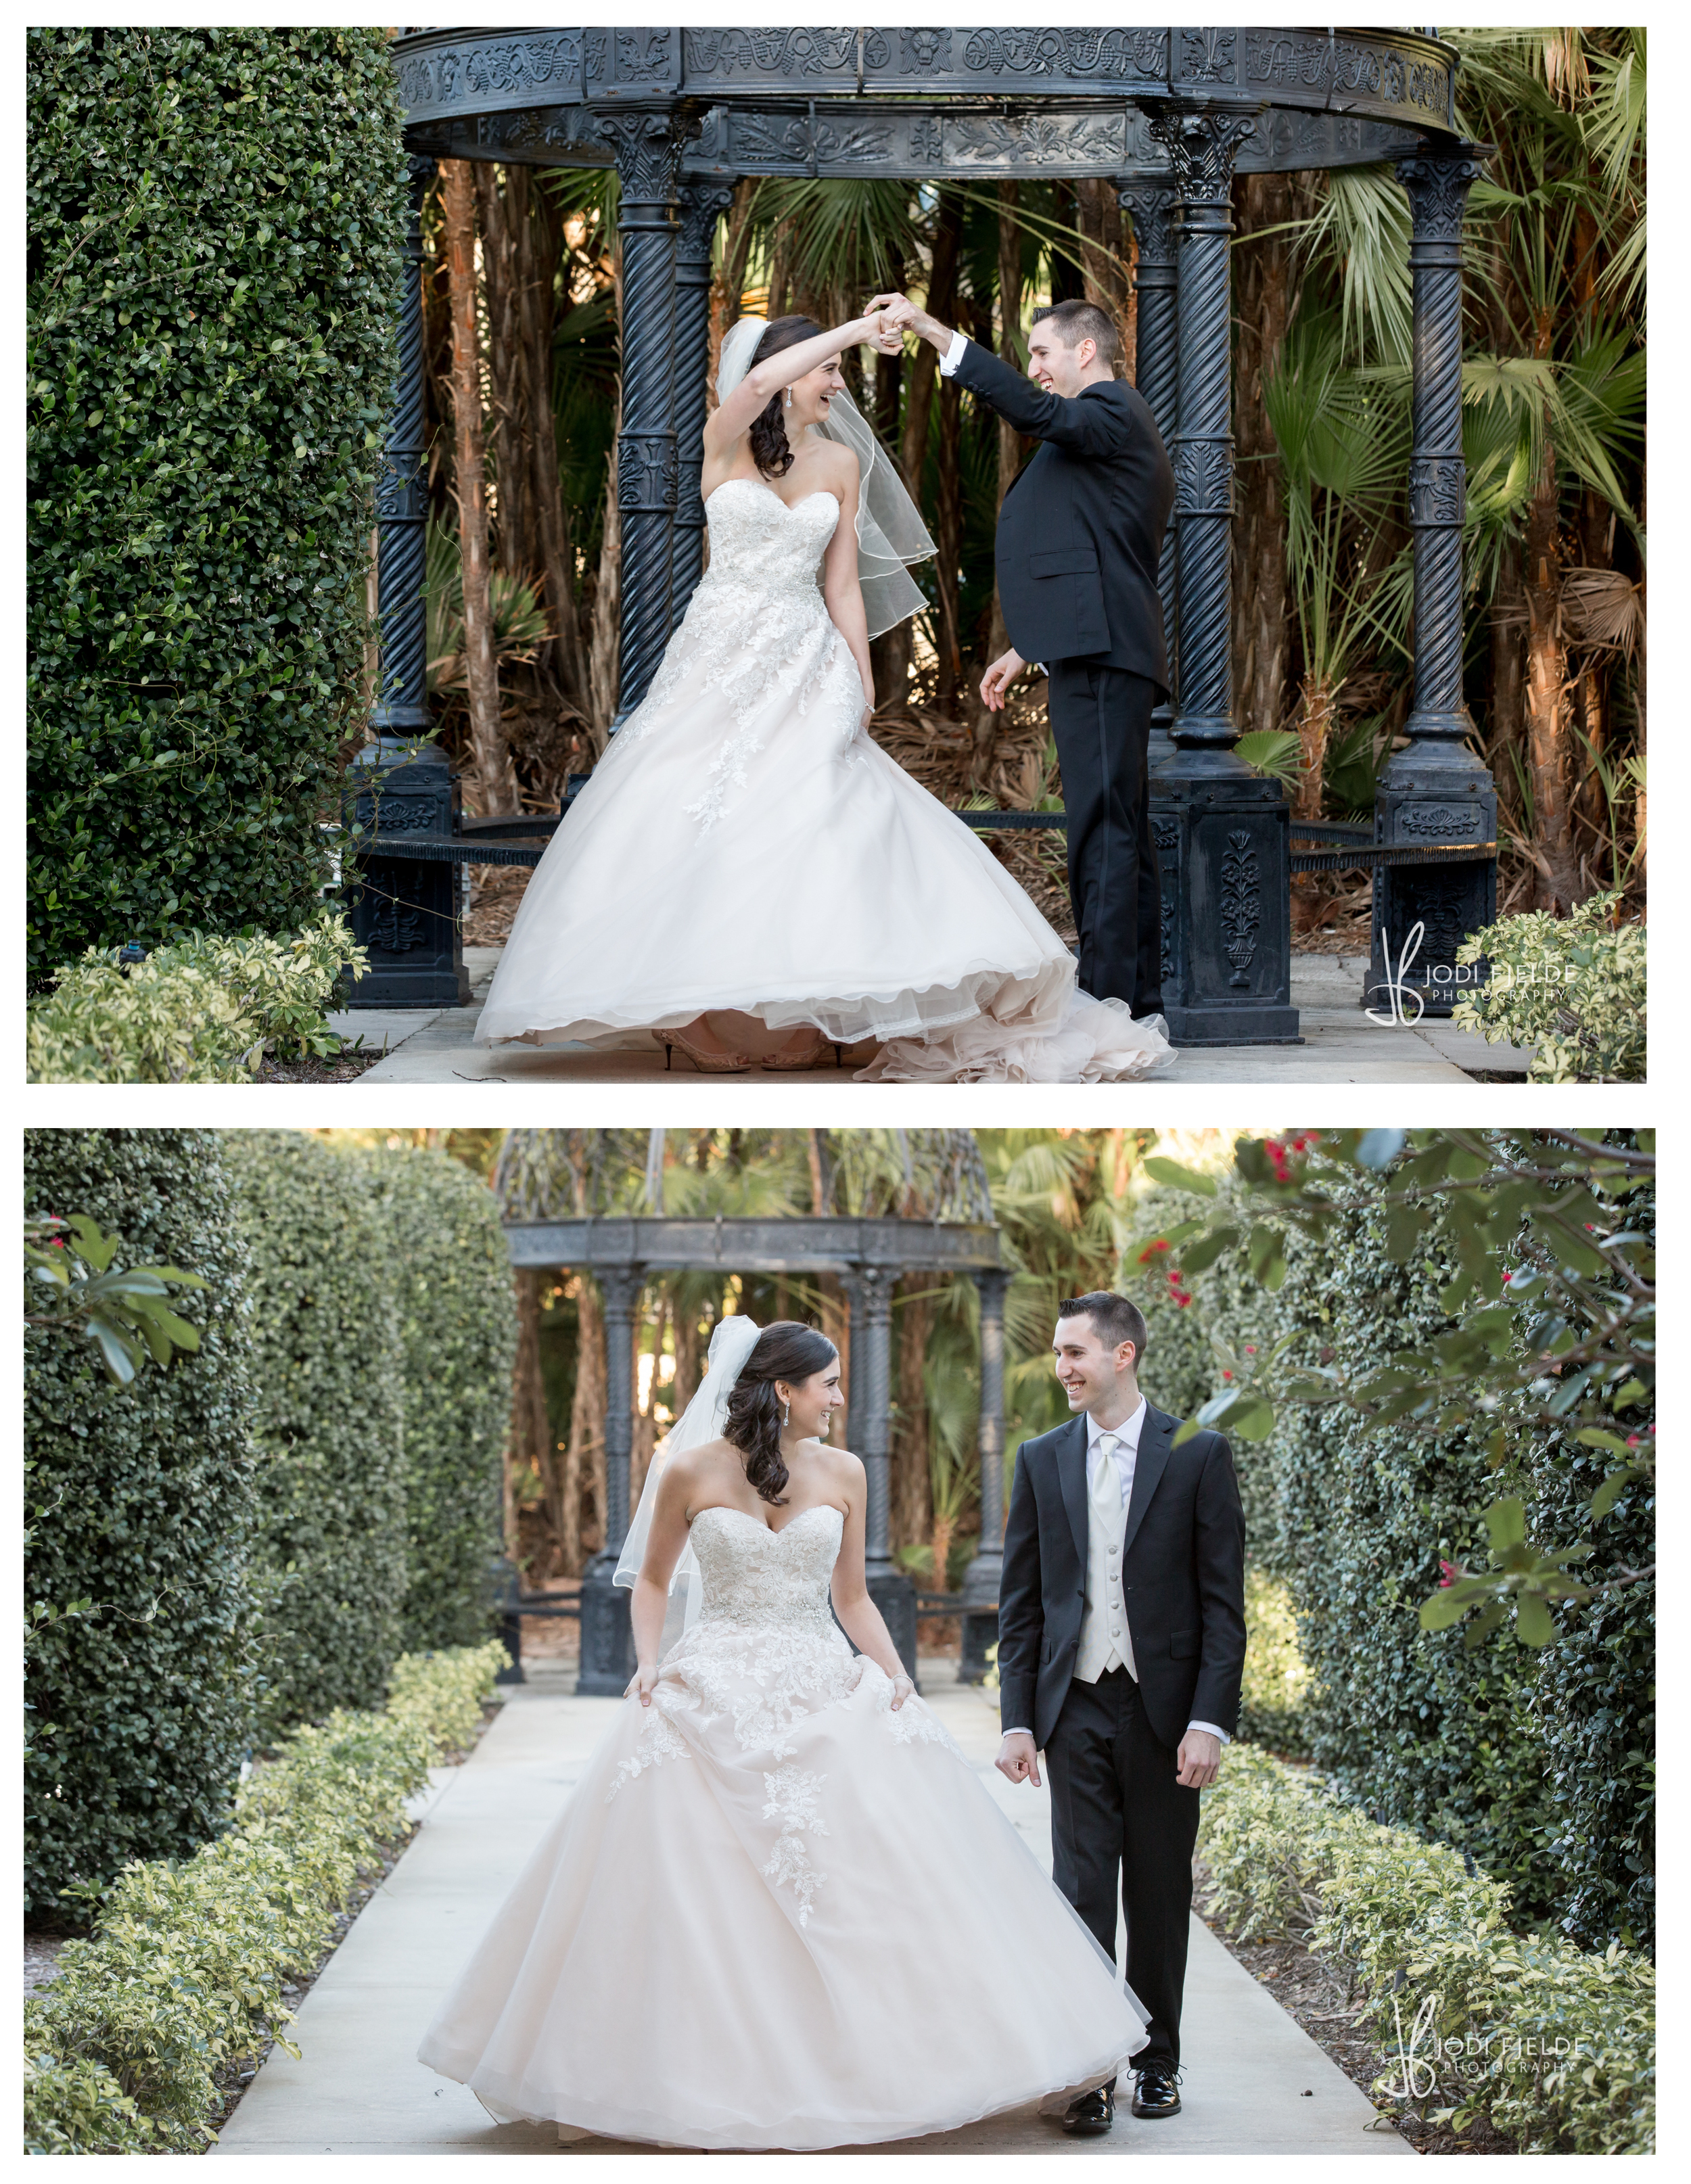 Benvenuto_Palm_Beach_Wedding_Jewish_Michelle & Jason_Jodi_Fjedle_Photography 27.jpg